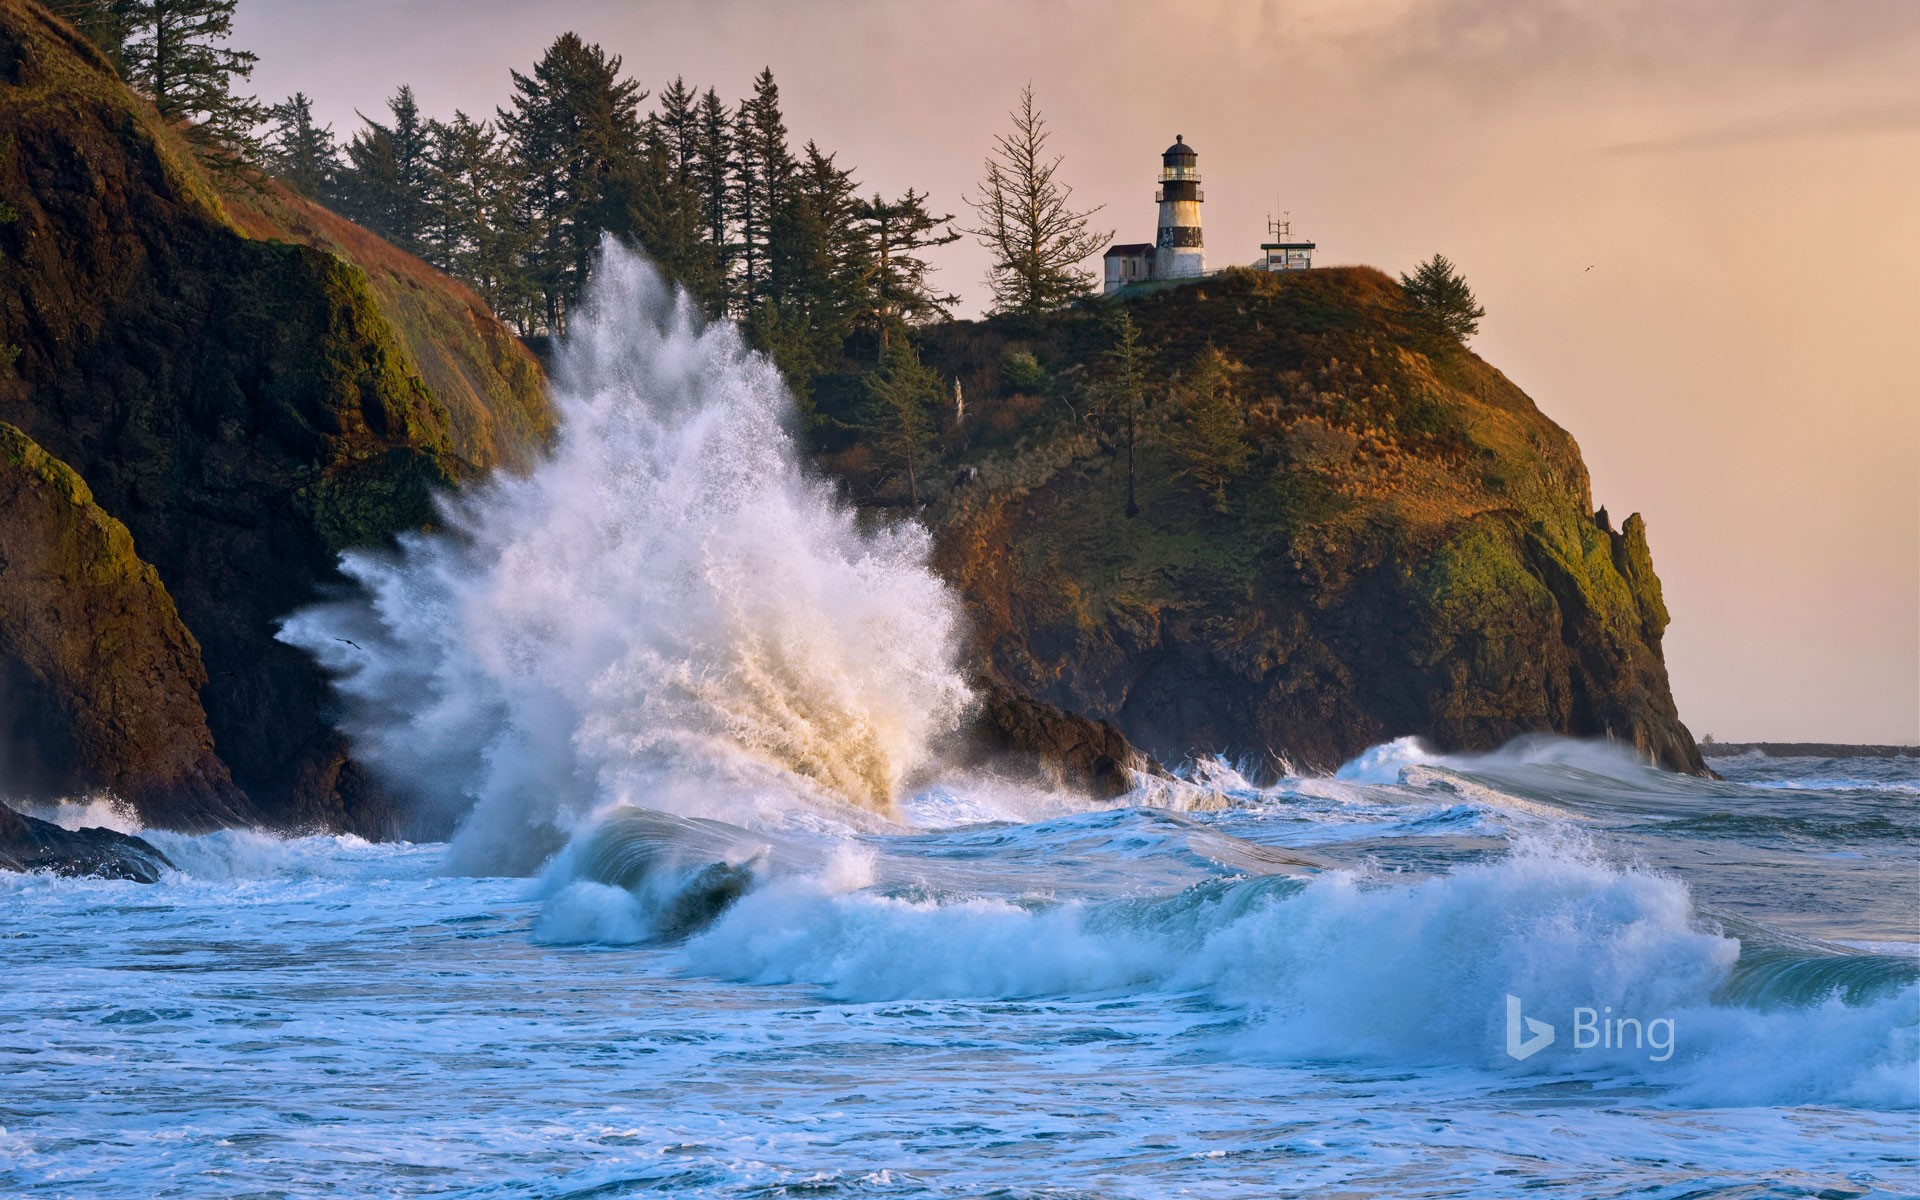 Cape Disappointment Lighthouse in Ilwaco, Washington, for the formation of the modern US Coast Guard